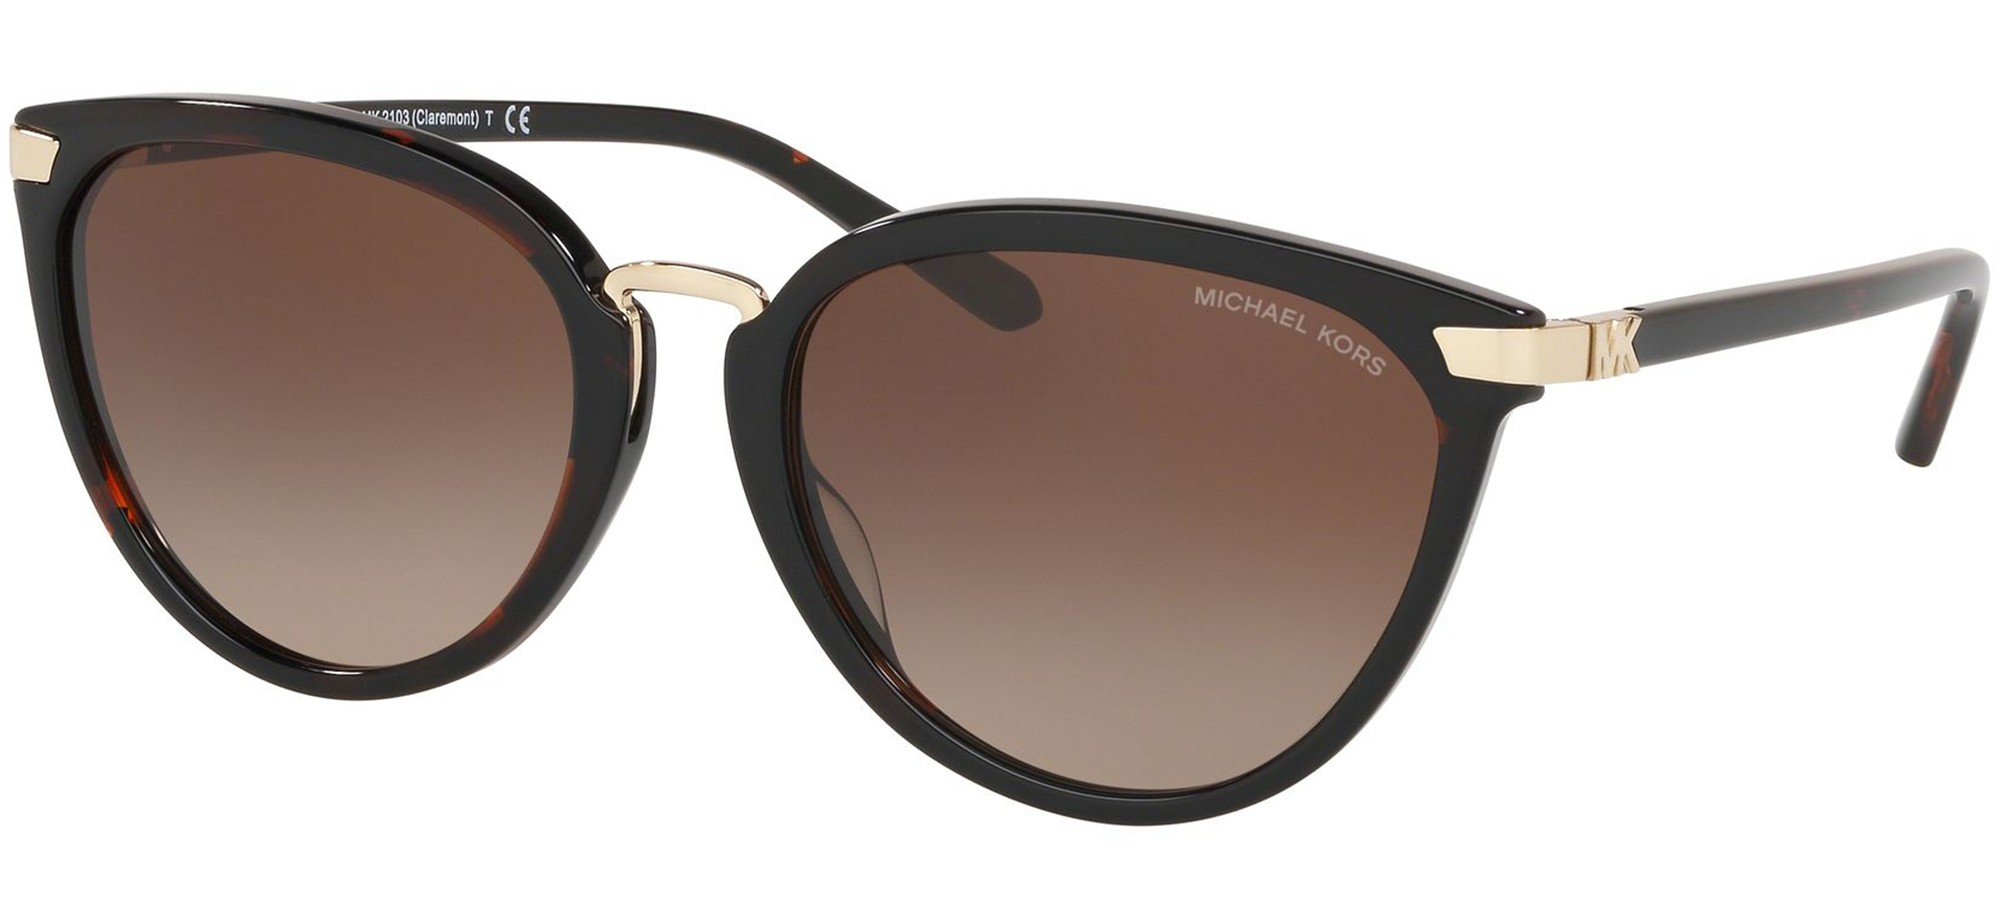 Michael Kors sunglasses CLAREMONT MK 2103